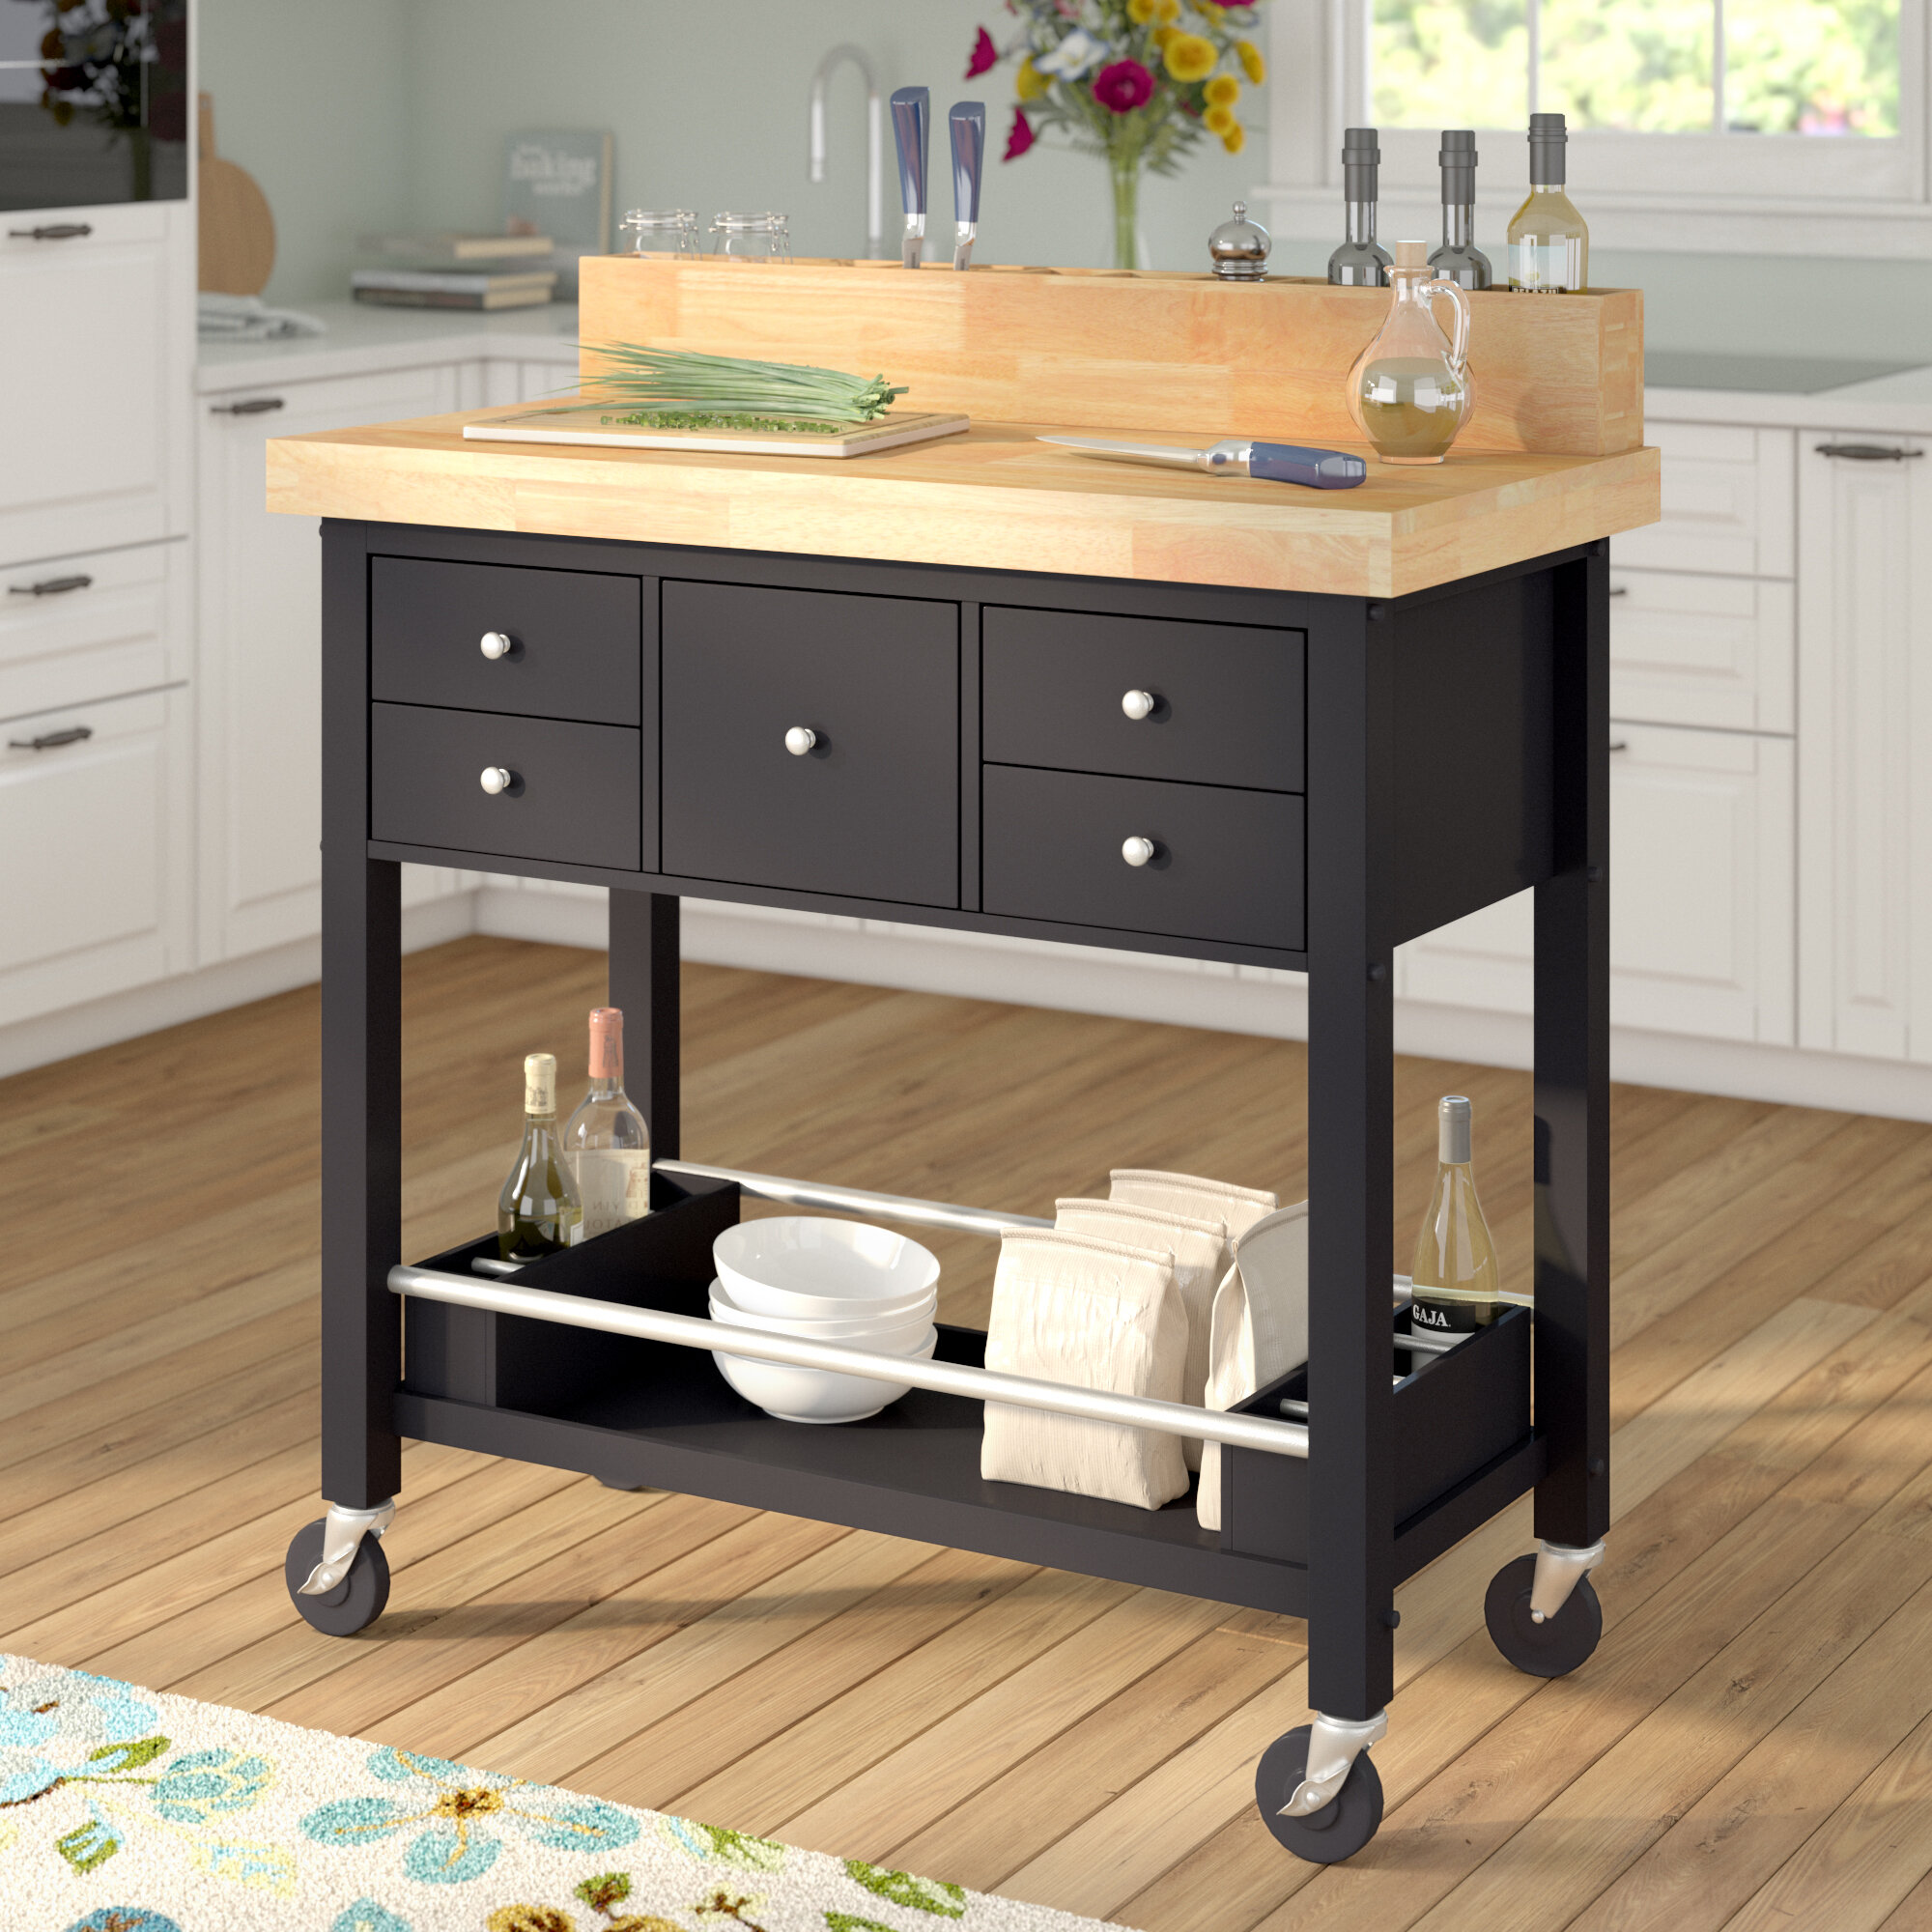 Red Barrel Studio Iron Horse Kitchen Island | Wayfair